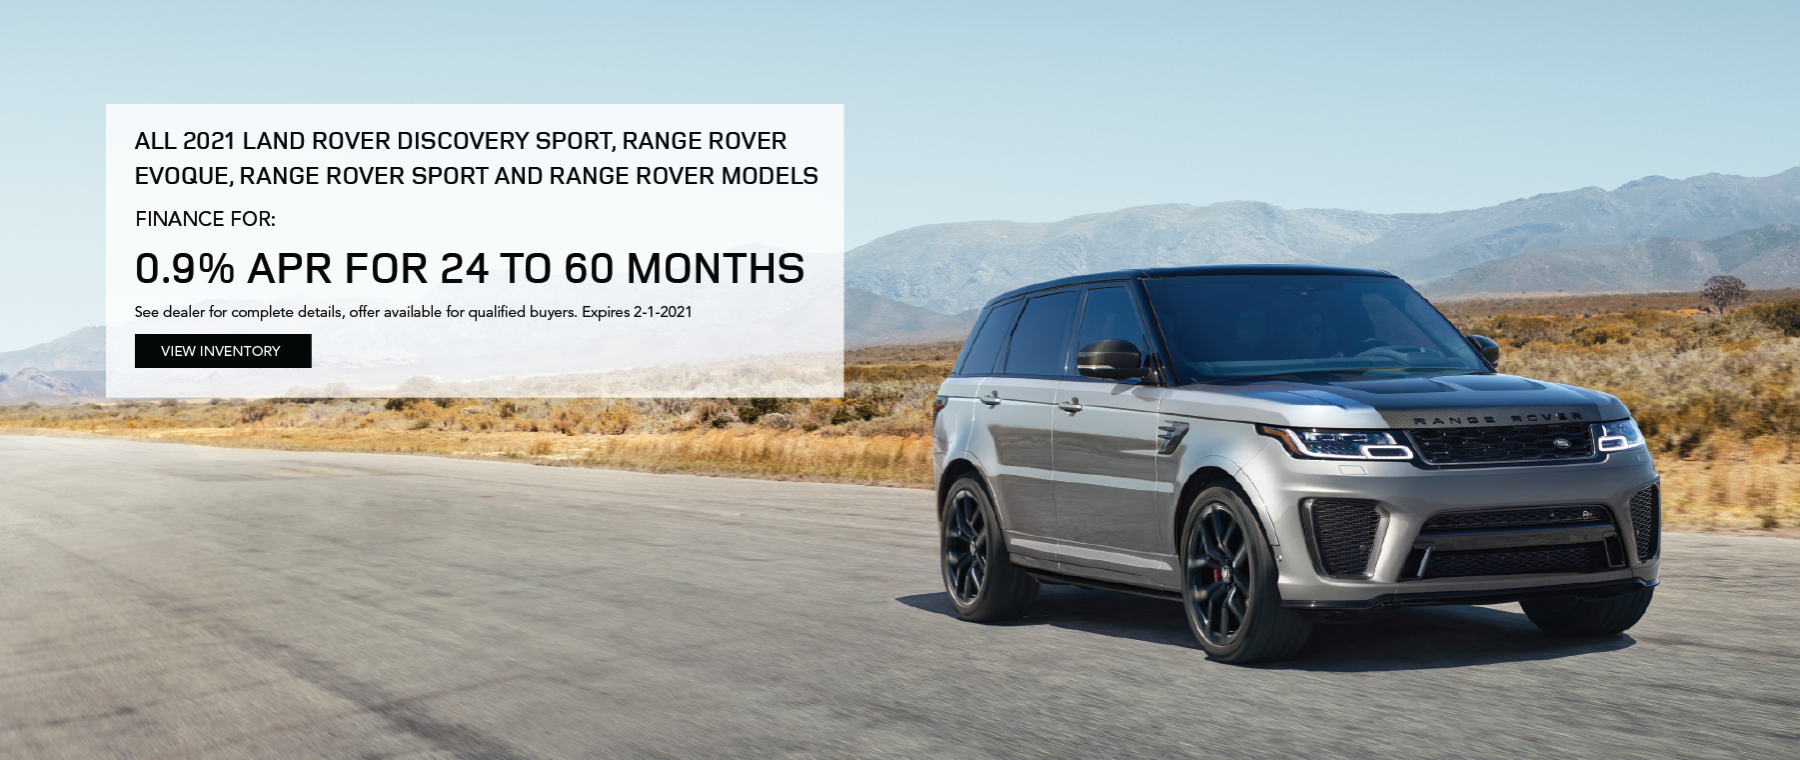 2021 RANGE ROVER ON ROAD WITH MOUNTIANS IN DISTANCE.0.9% for 24 – 60 months on: o21MY Discovery Sport o21MY Evoque o21MY Range Rover Sport o21MY Range Rover CLCIK TO VIEW INVENTORY.